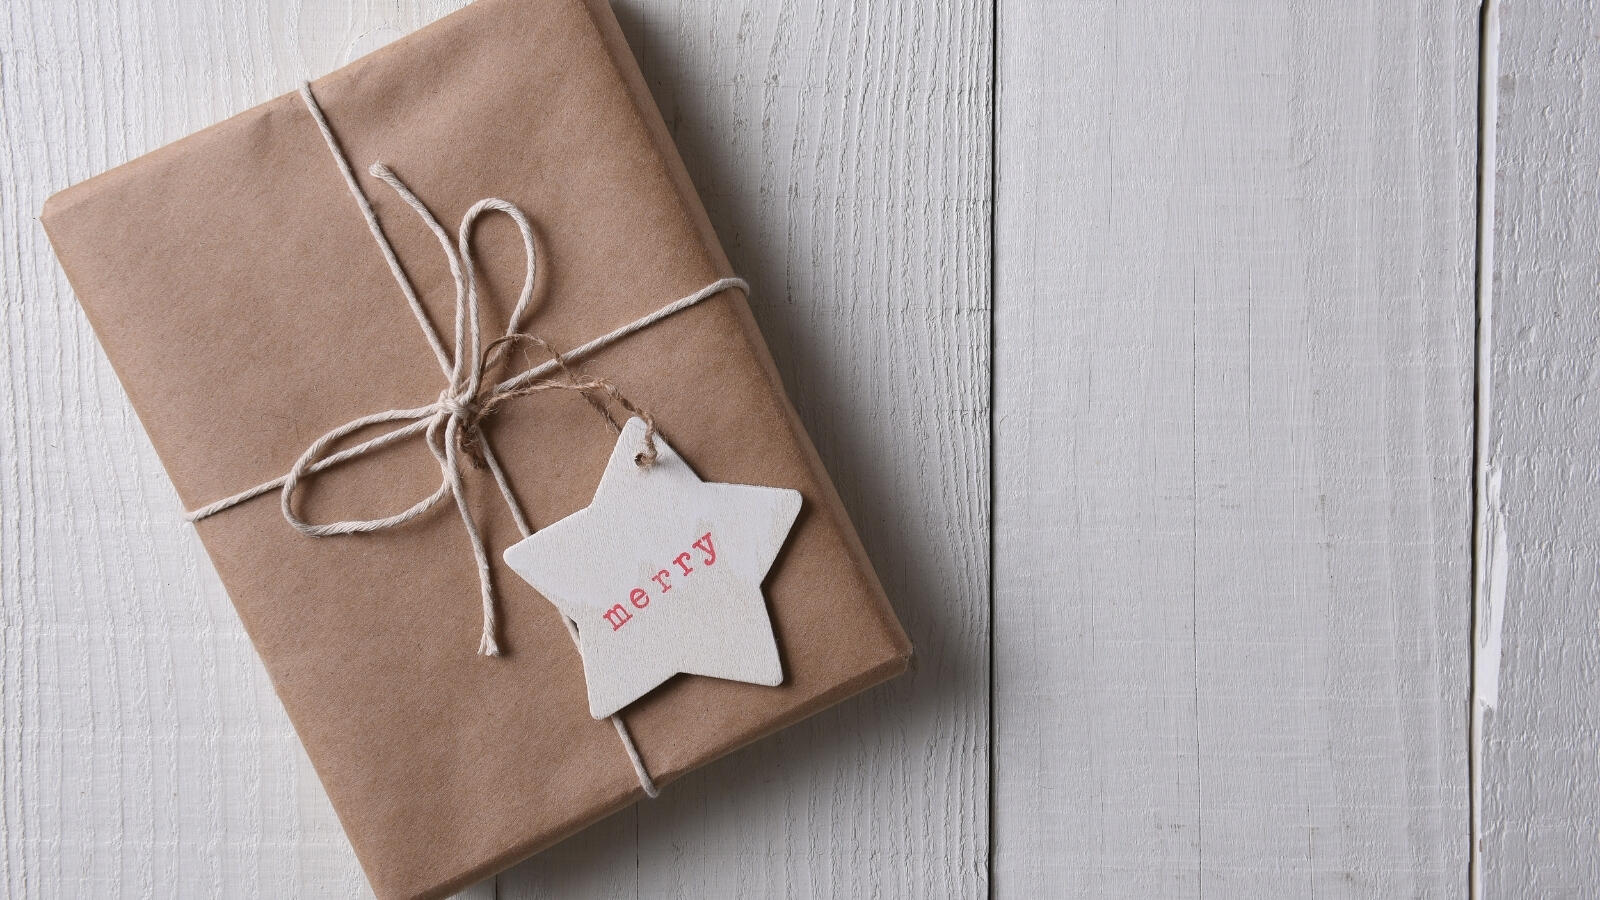 _How to find perfect presents for the children in your life